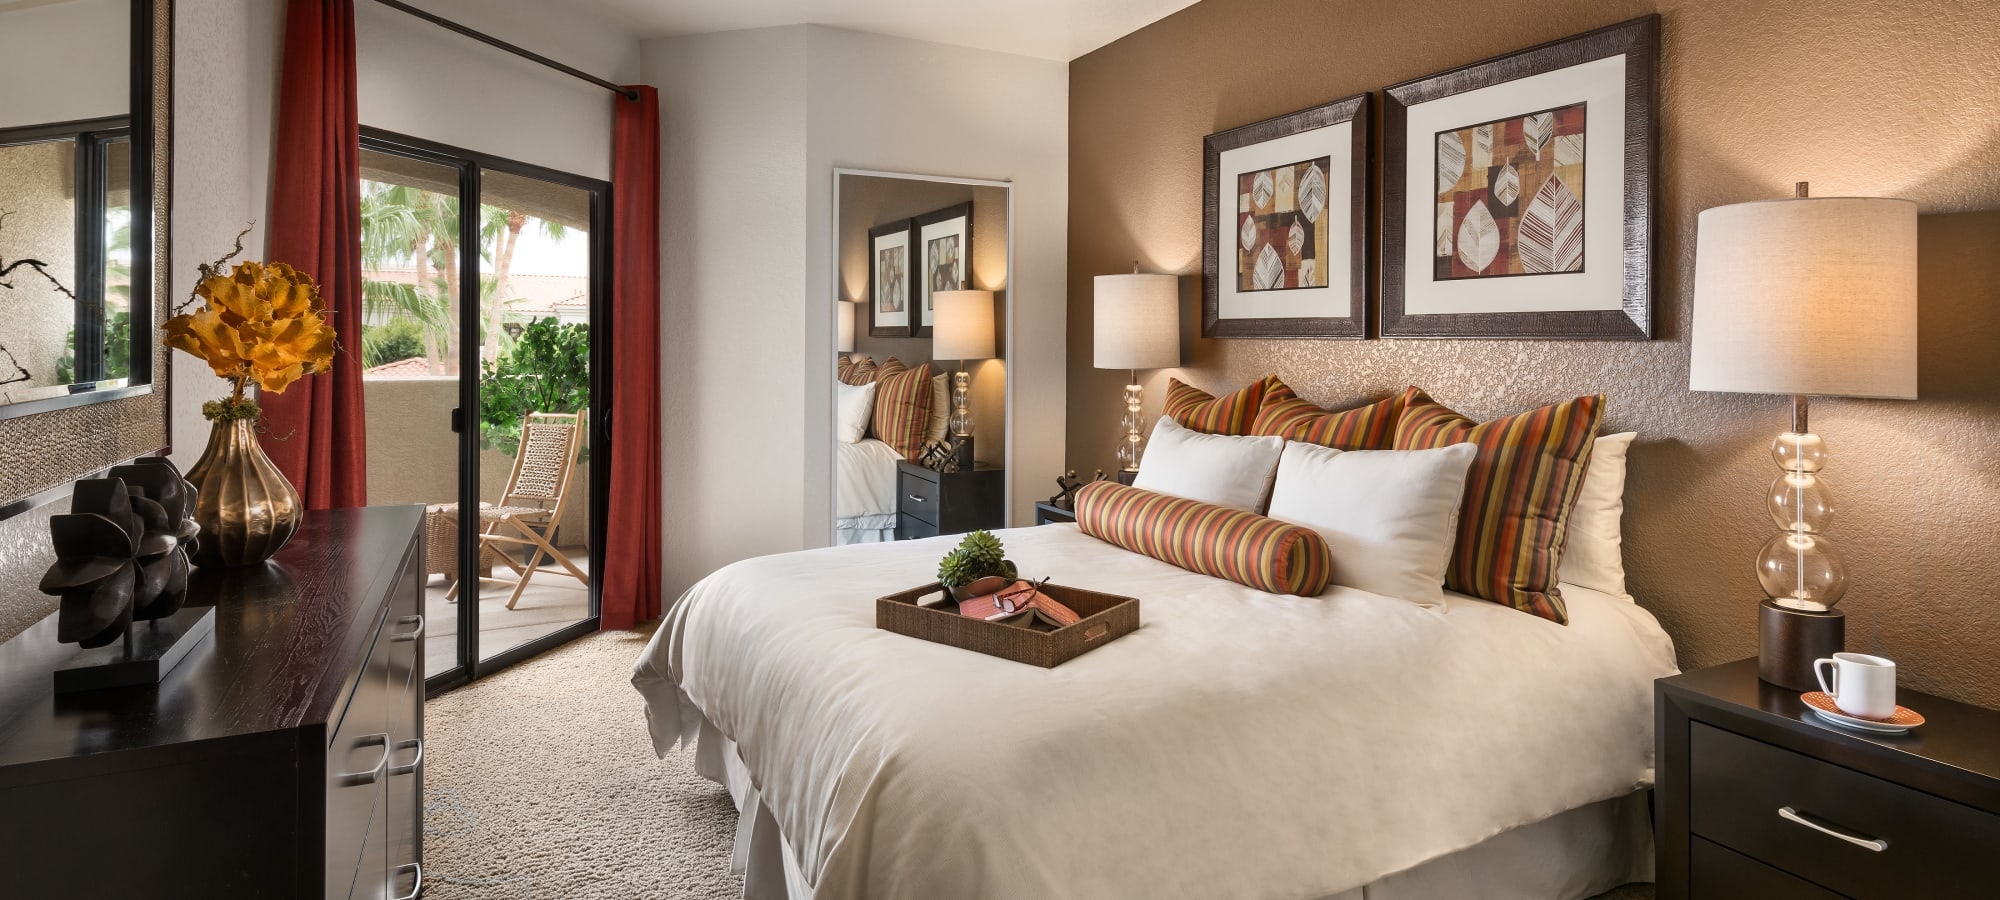 Our apartments in Glendale, Arizona showcase a luxury bedroom